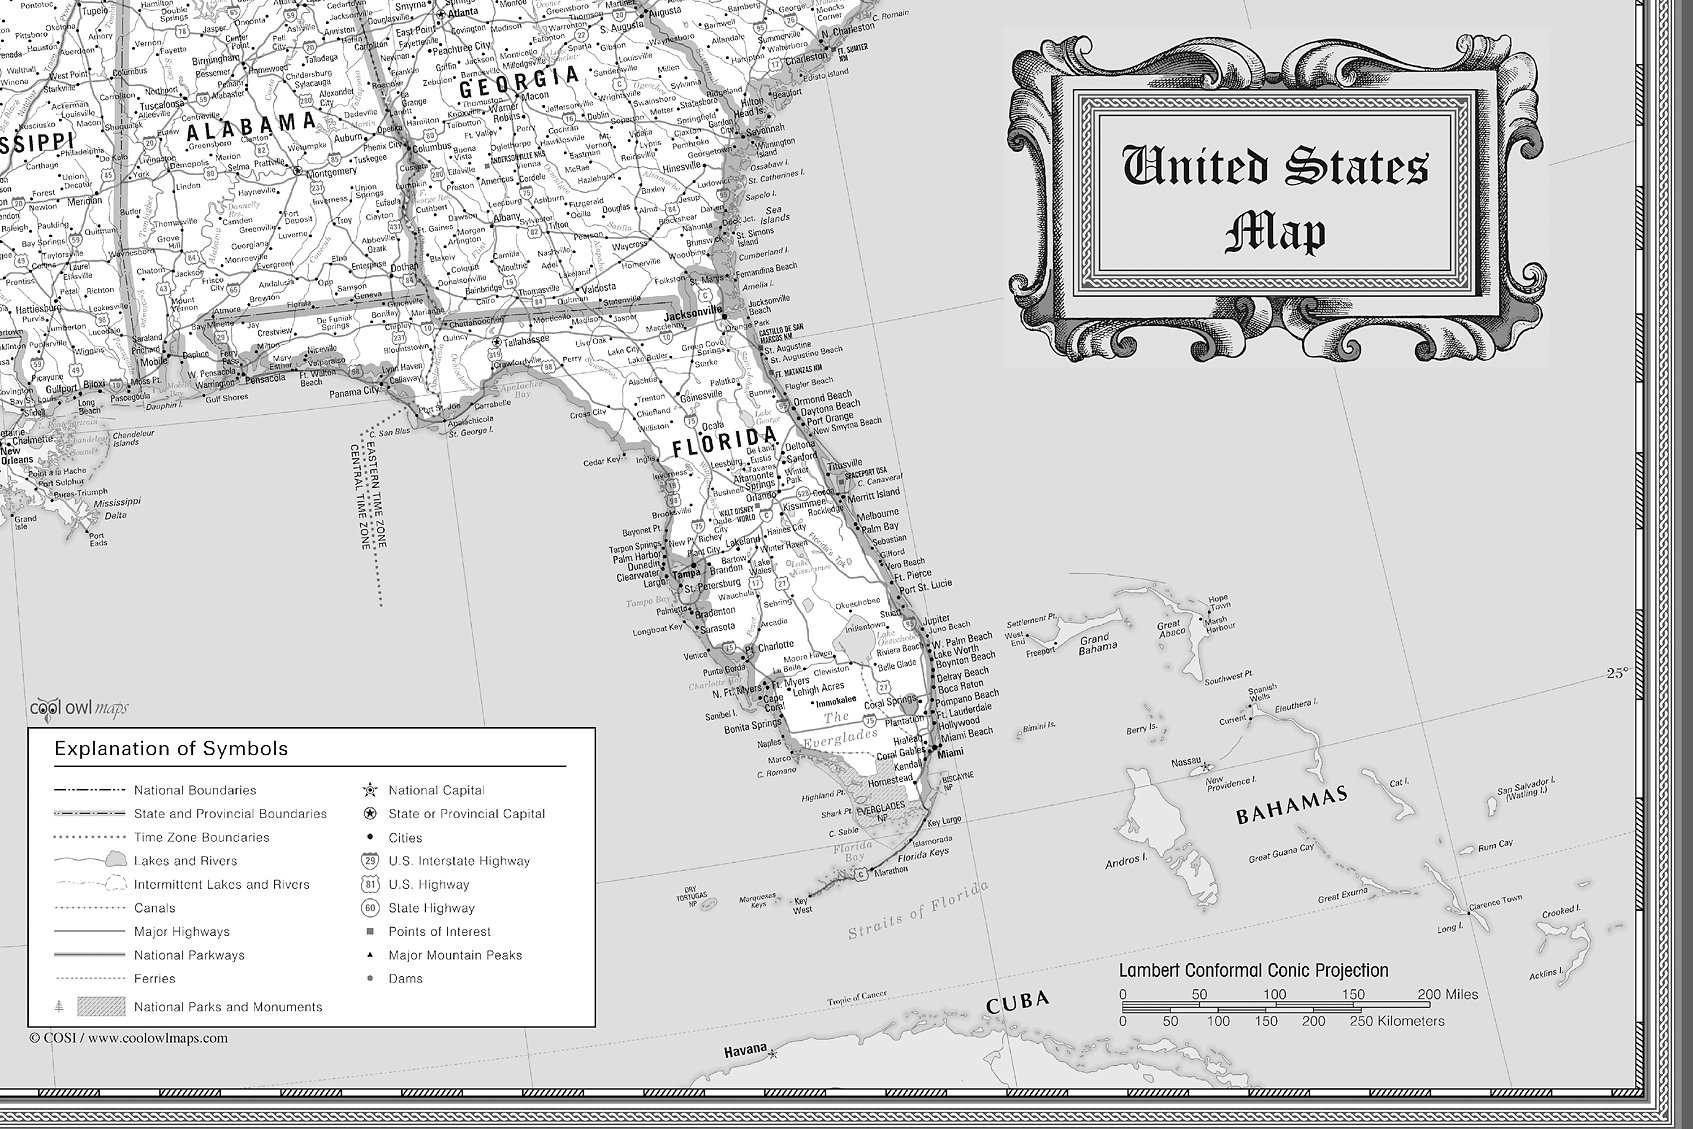 This Classic Black White Style Modern United States Wall Map Rolled Paper 36 X24 Inches Features A Wealth Of Information Including State Boundaries